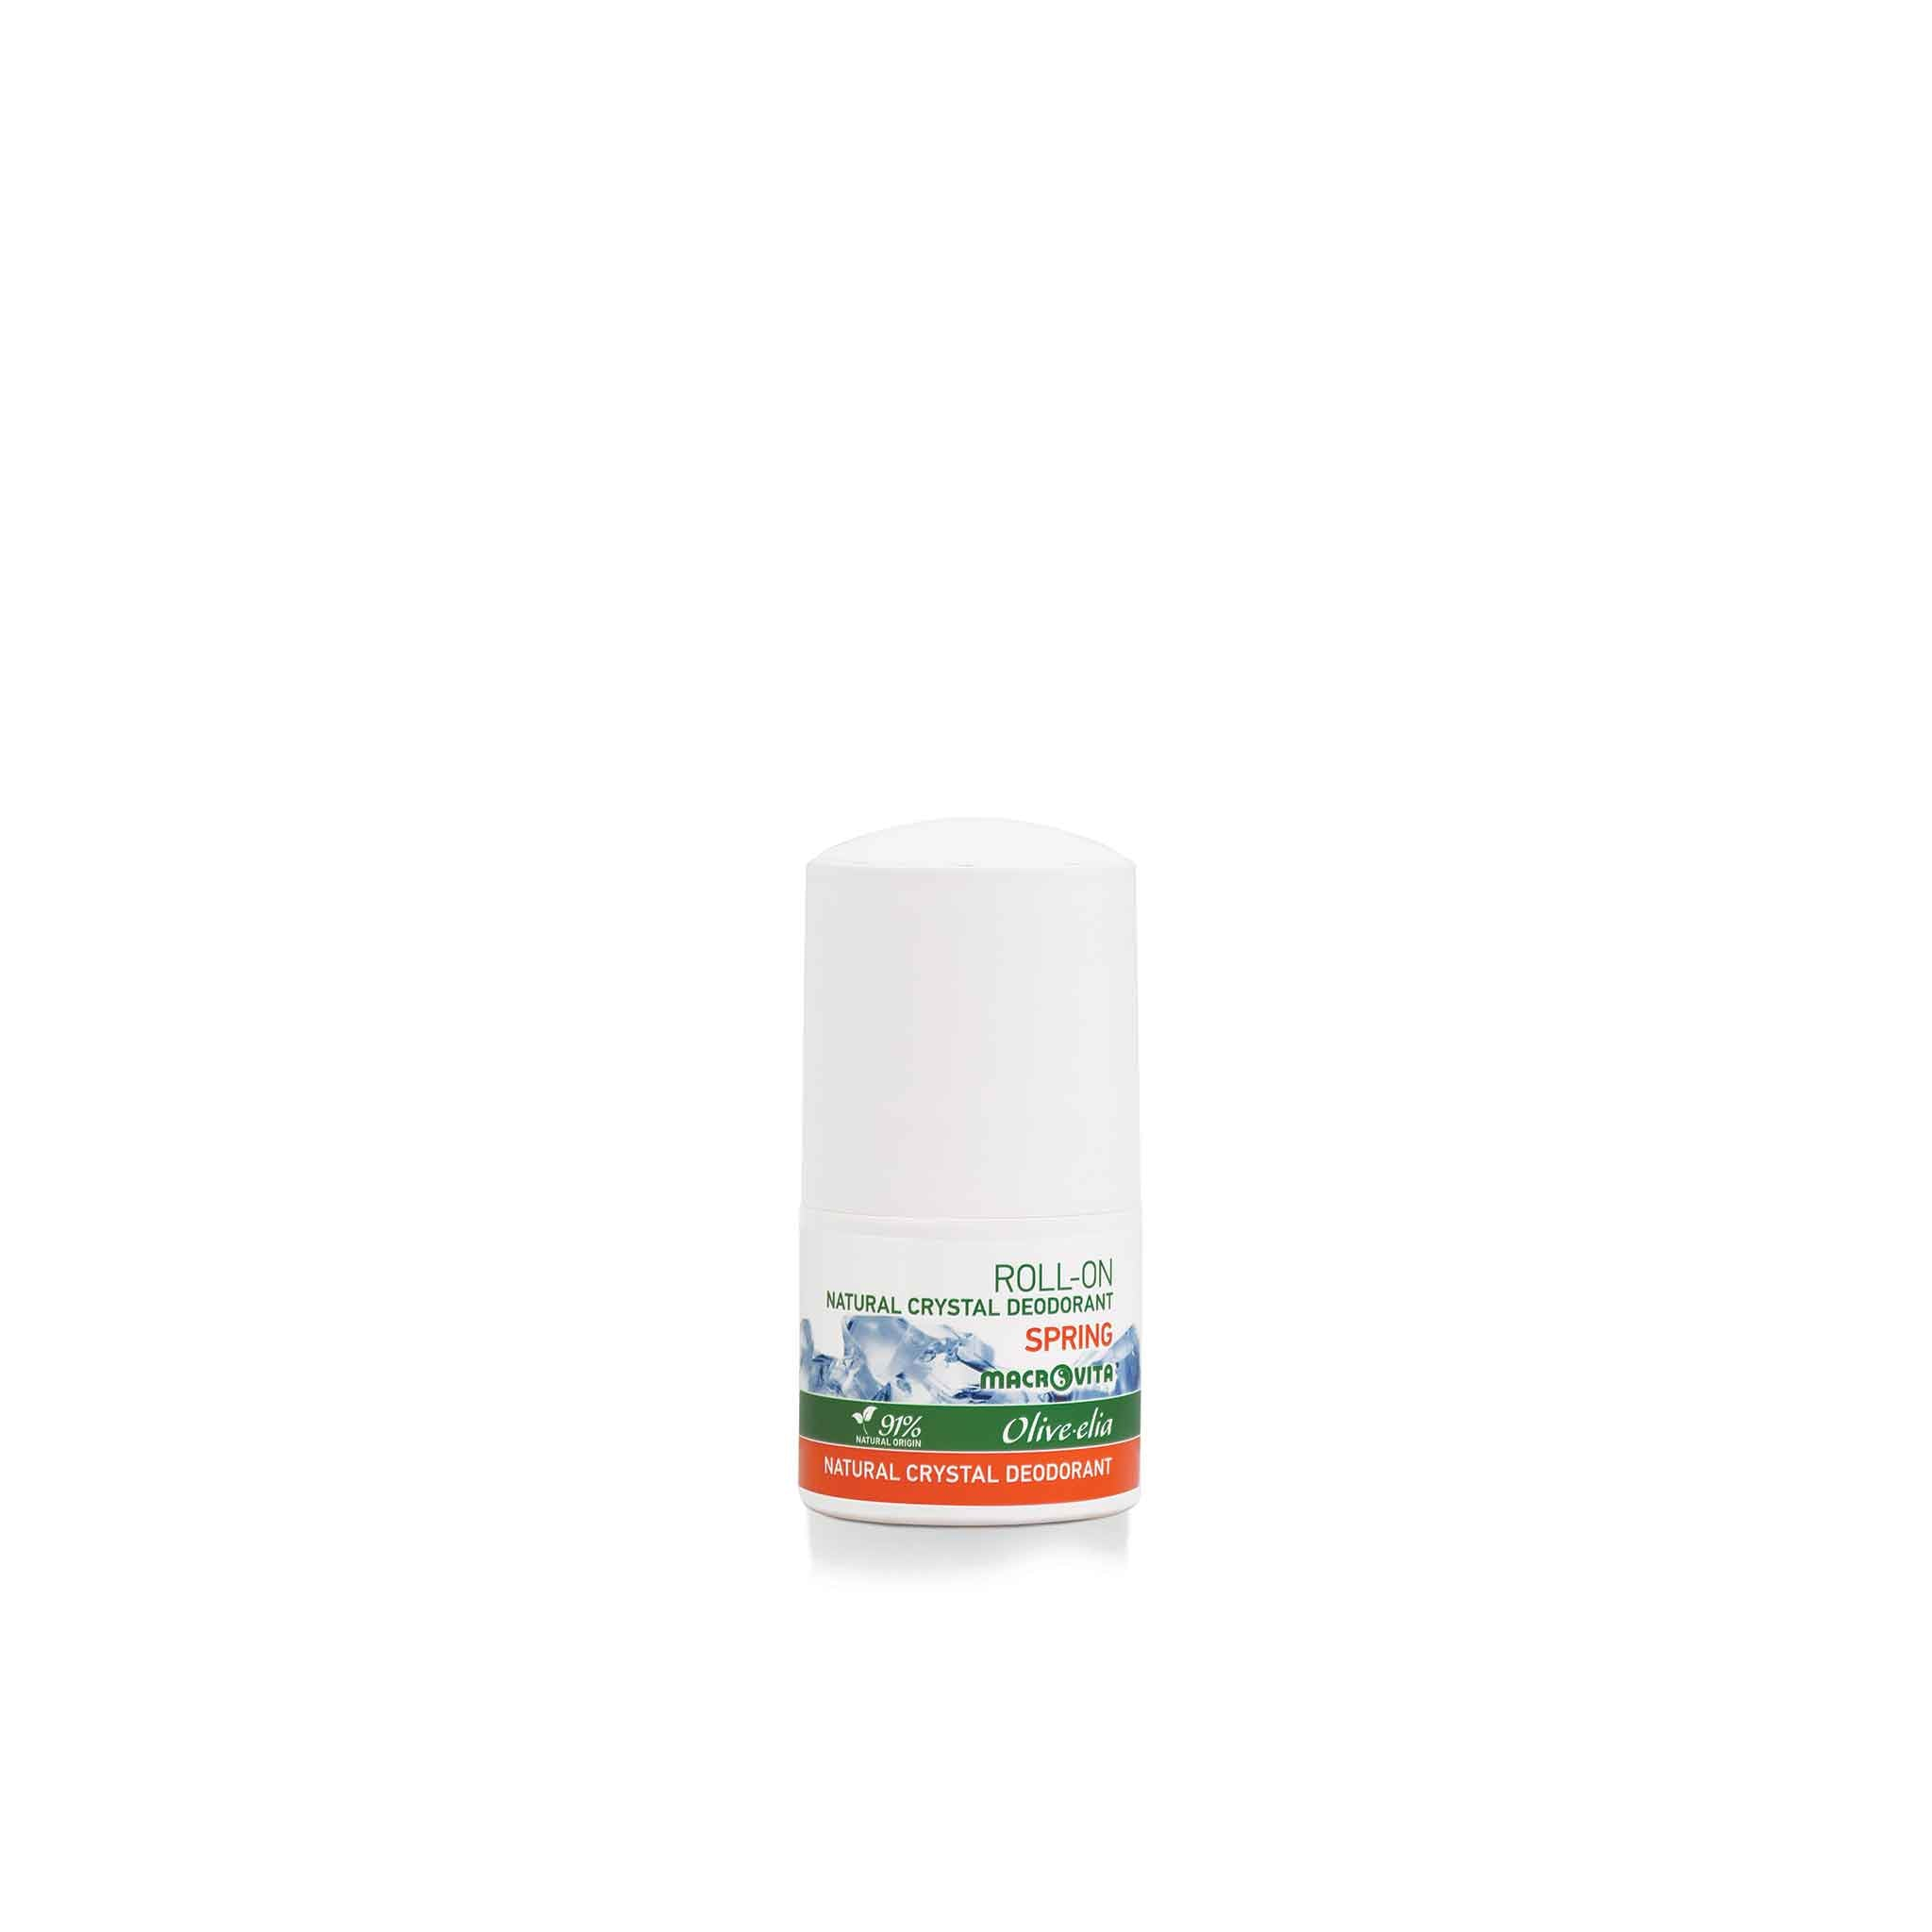 OLIVELIA SPRING DEO ROLL-ON